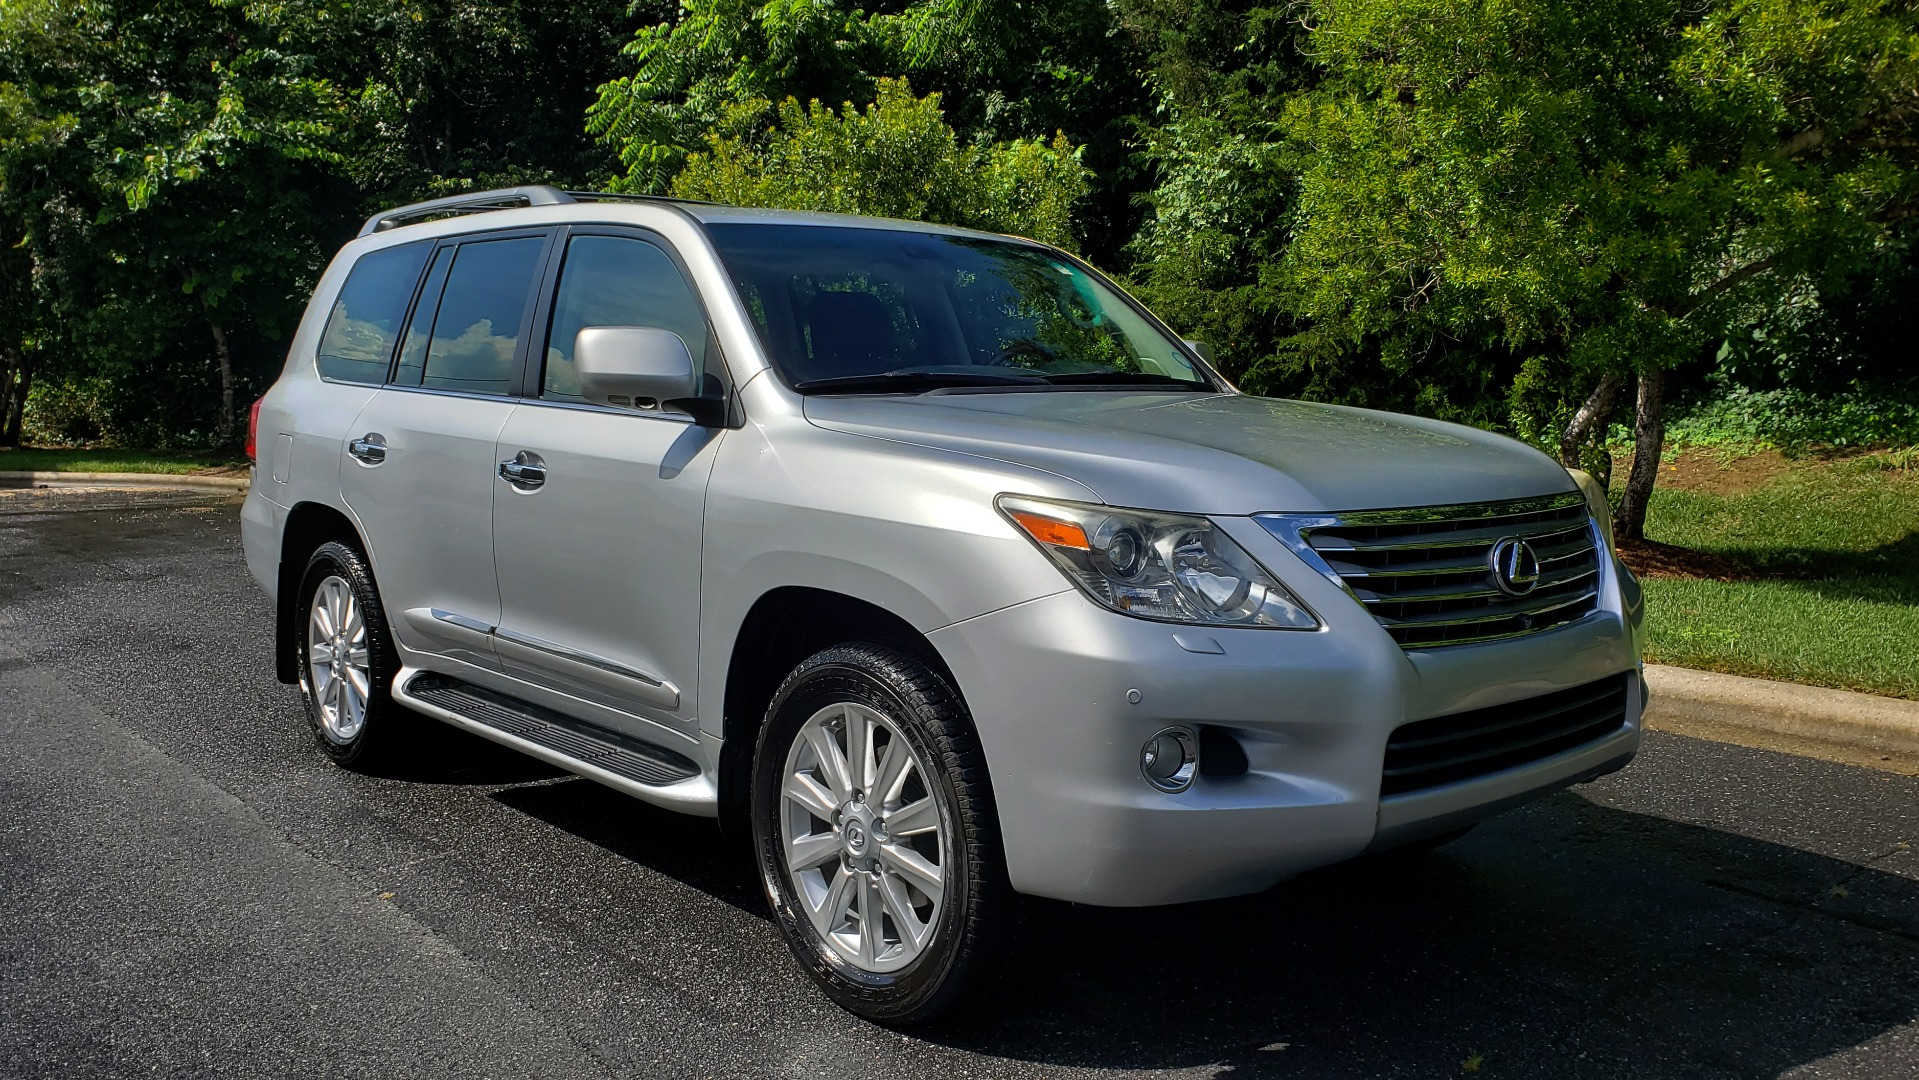 Used 2008 Lexus LX 570 4WD NAV / TECHNOLOGY PKG / 3-ROW / SUNROOF / REARVIEW for sale Sold at Formula Imports in Charlotte NC 28227 4